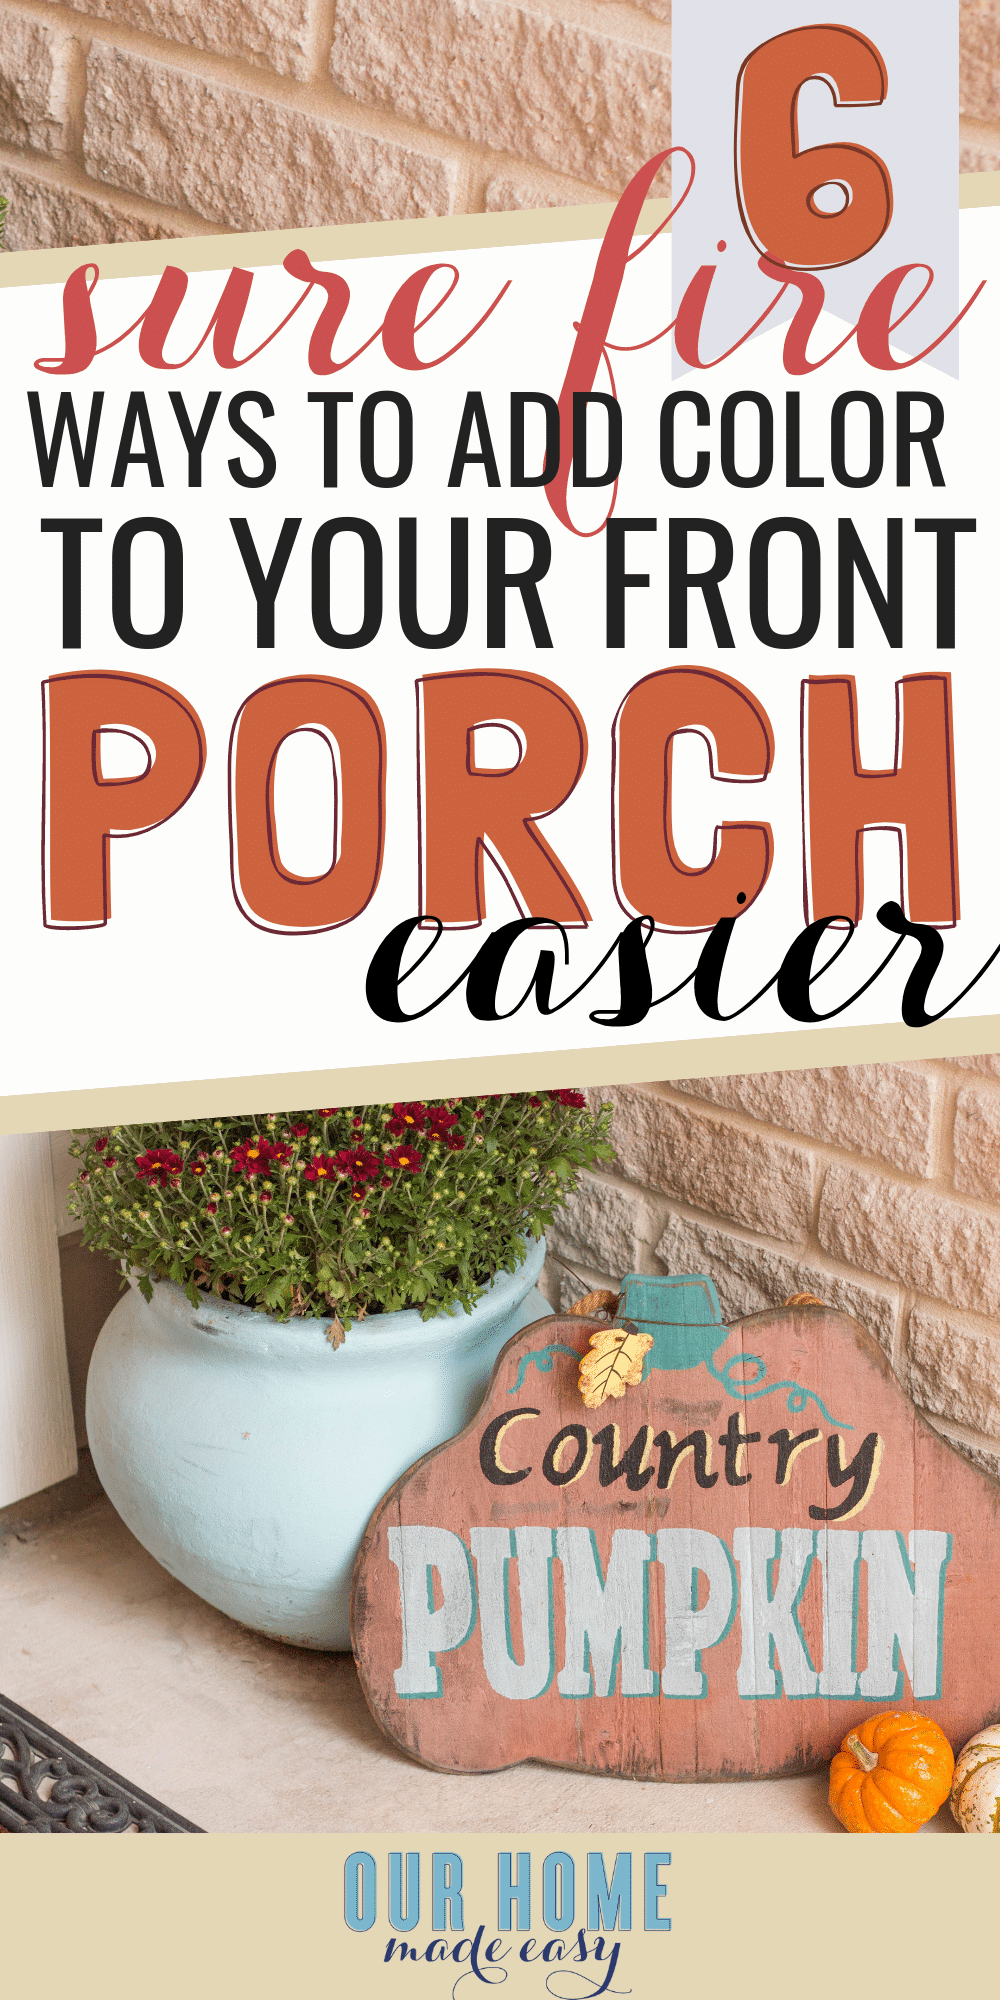 Feeling overwhelmed about adding color? Here are 6 easy ways to decorate your front porch with color! Click to see all the tricks to making it look great! #fall #homedecor #frontporch #home #fall #homedecorideas #decoratingideas